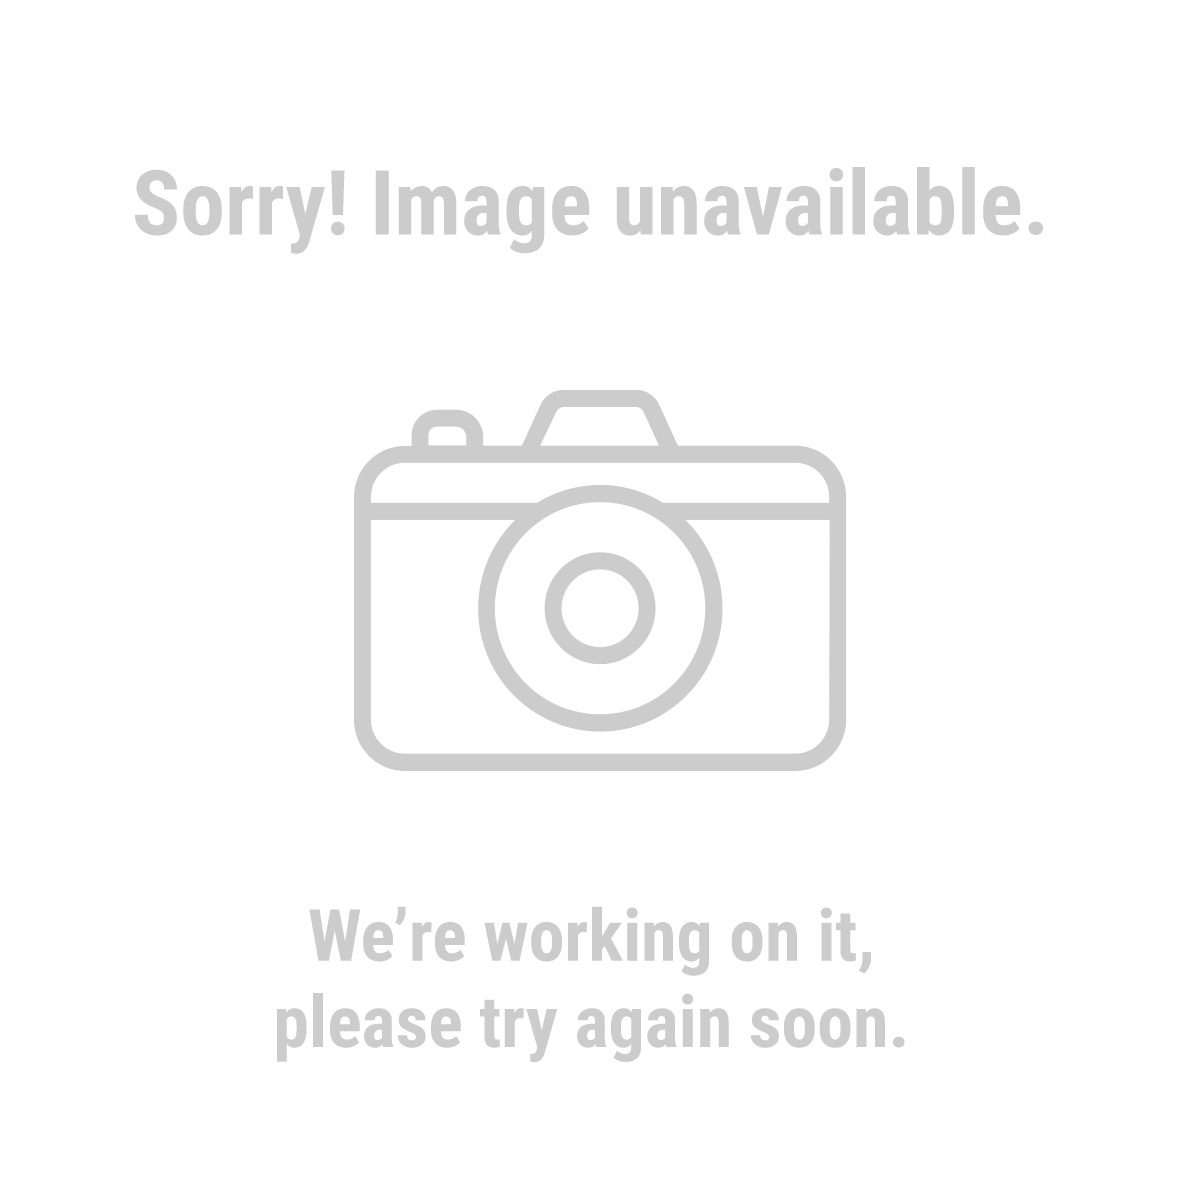 HFT® 60469 19 ft. x 39 ft. 4 in. All Purpose Weather Resistant Tarp